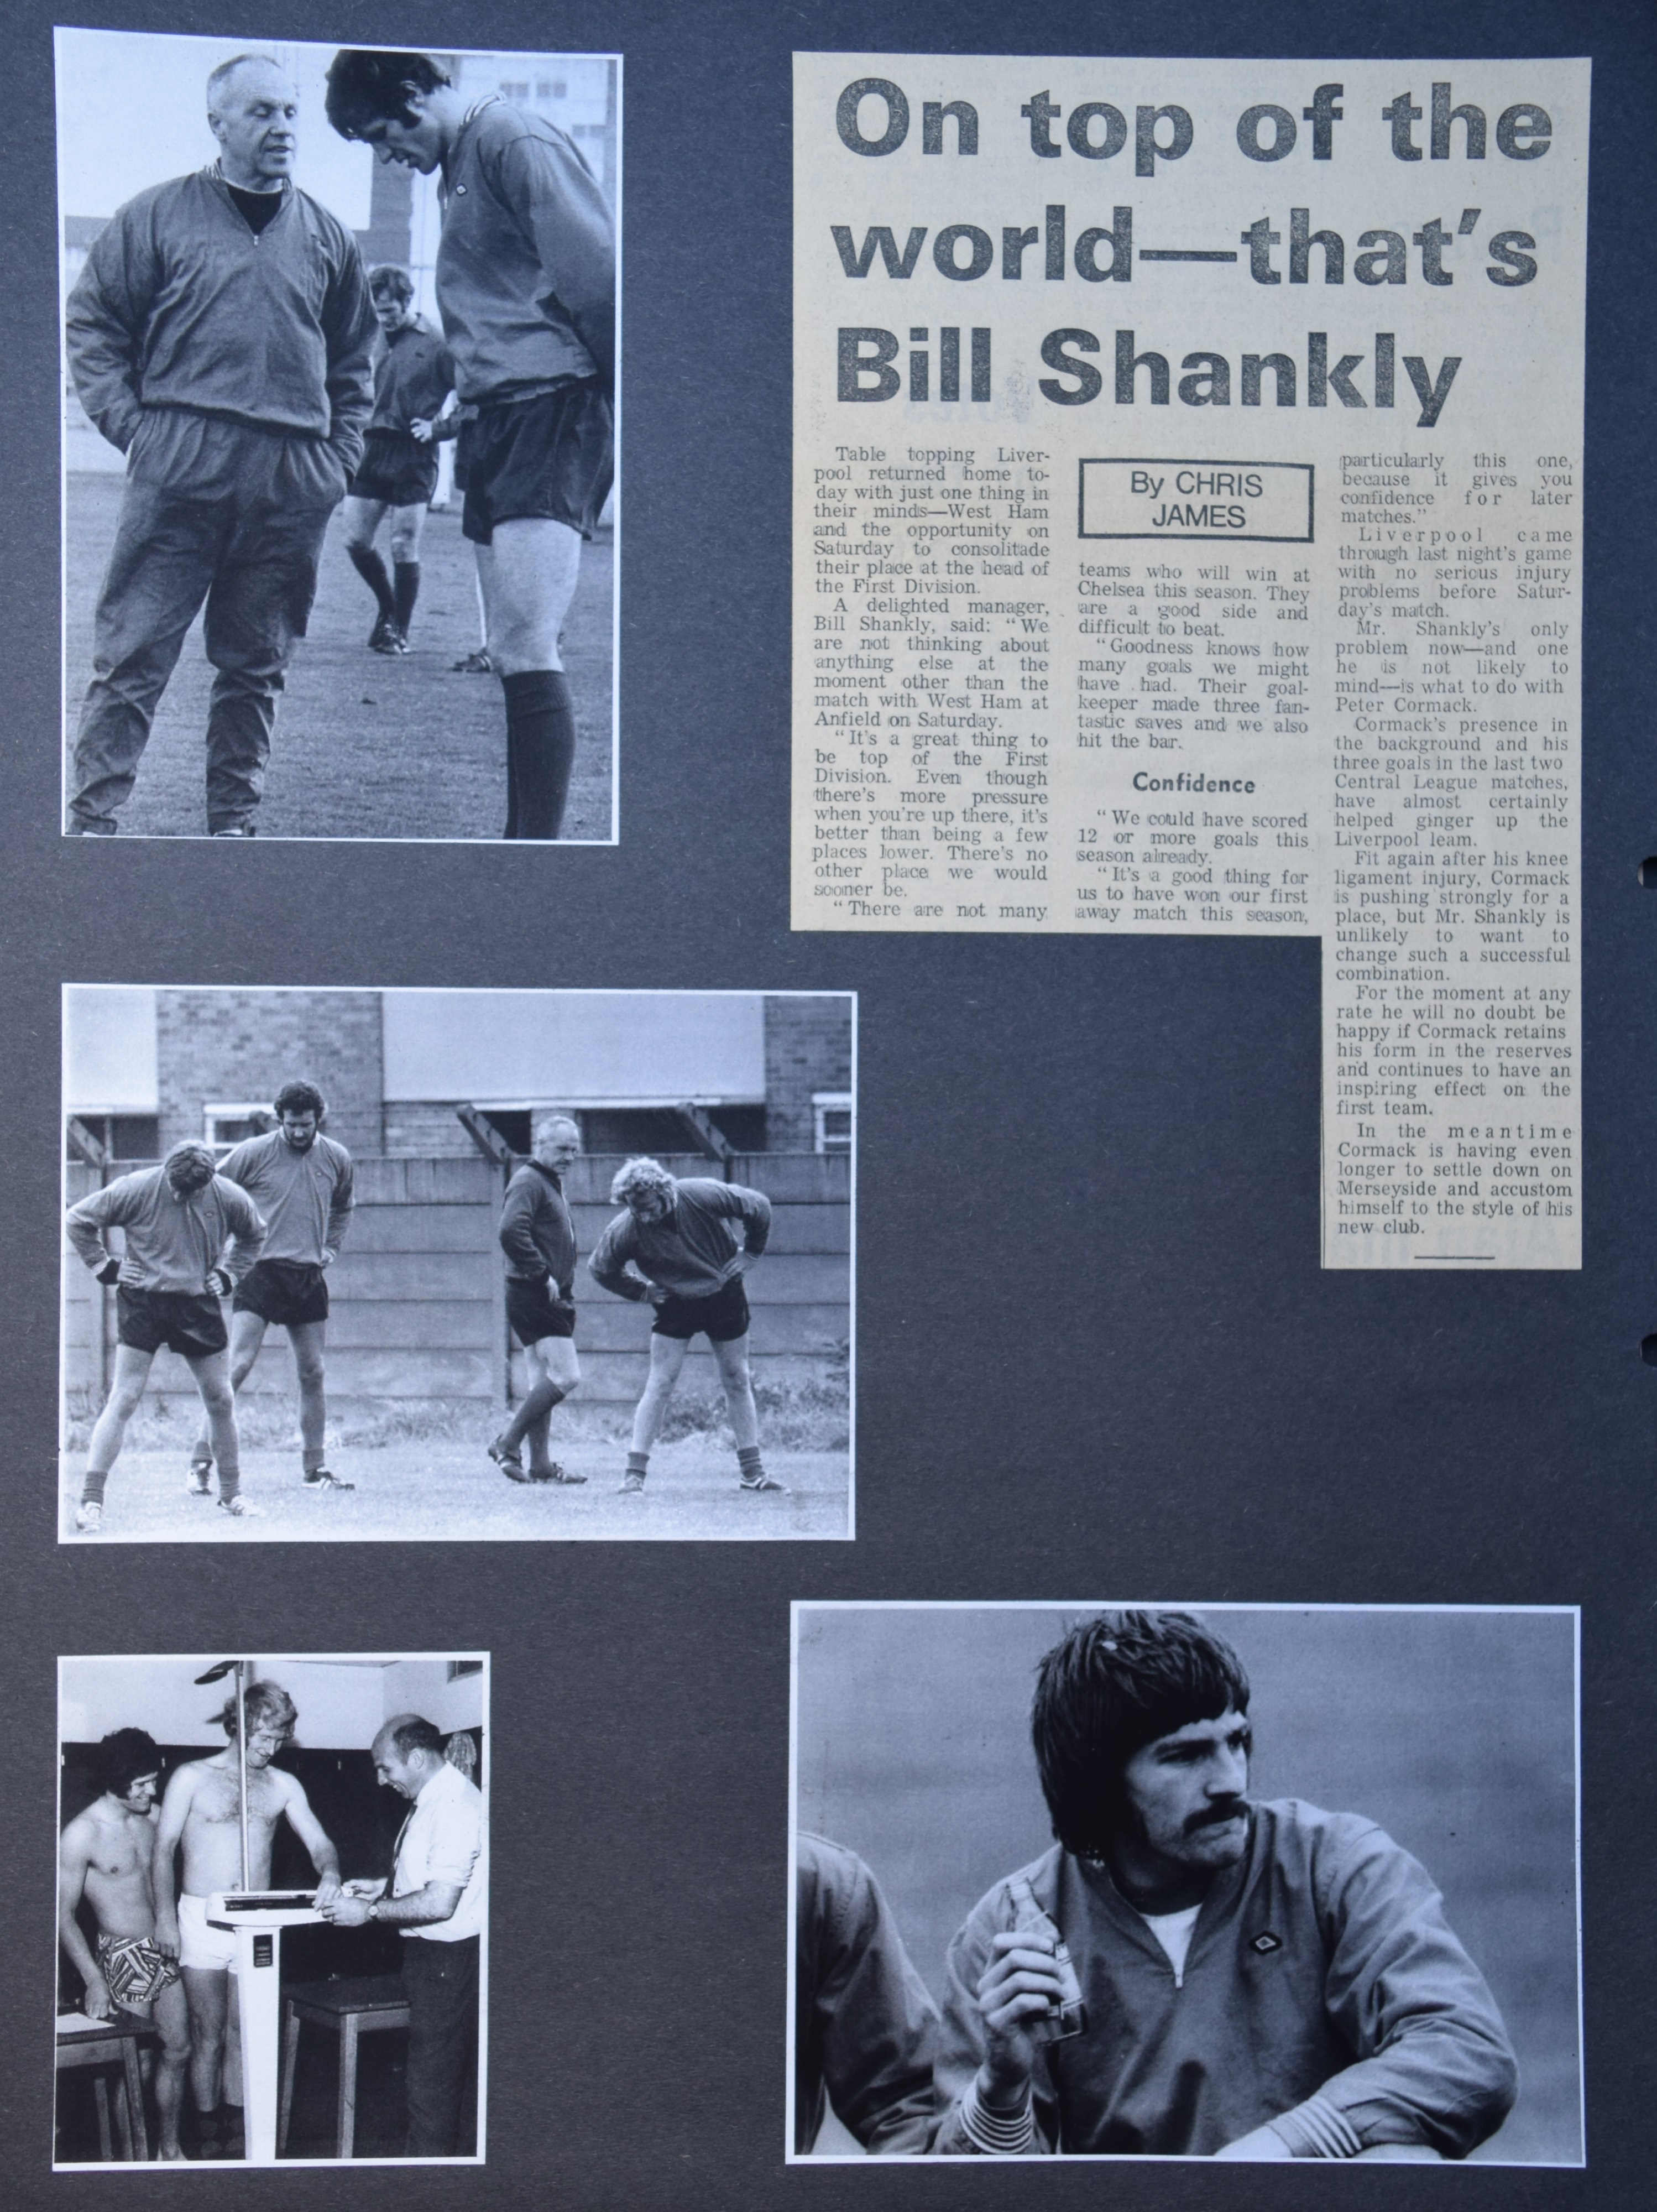 On top of the world - that's Shankly! - August 1972